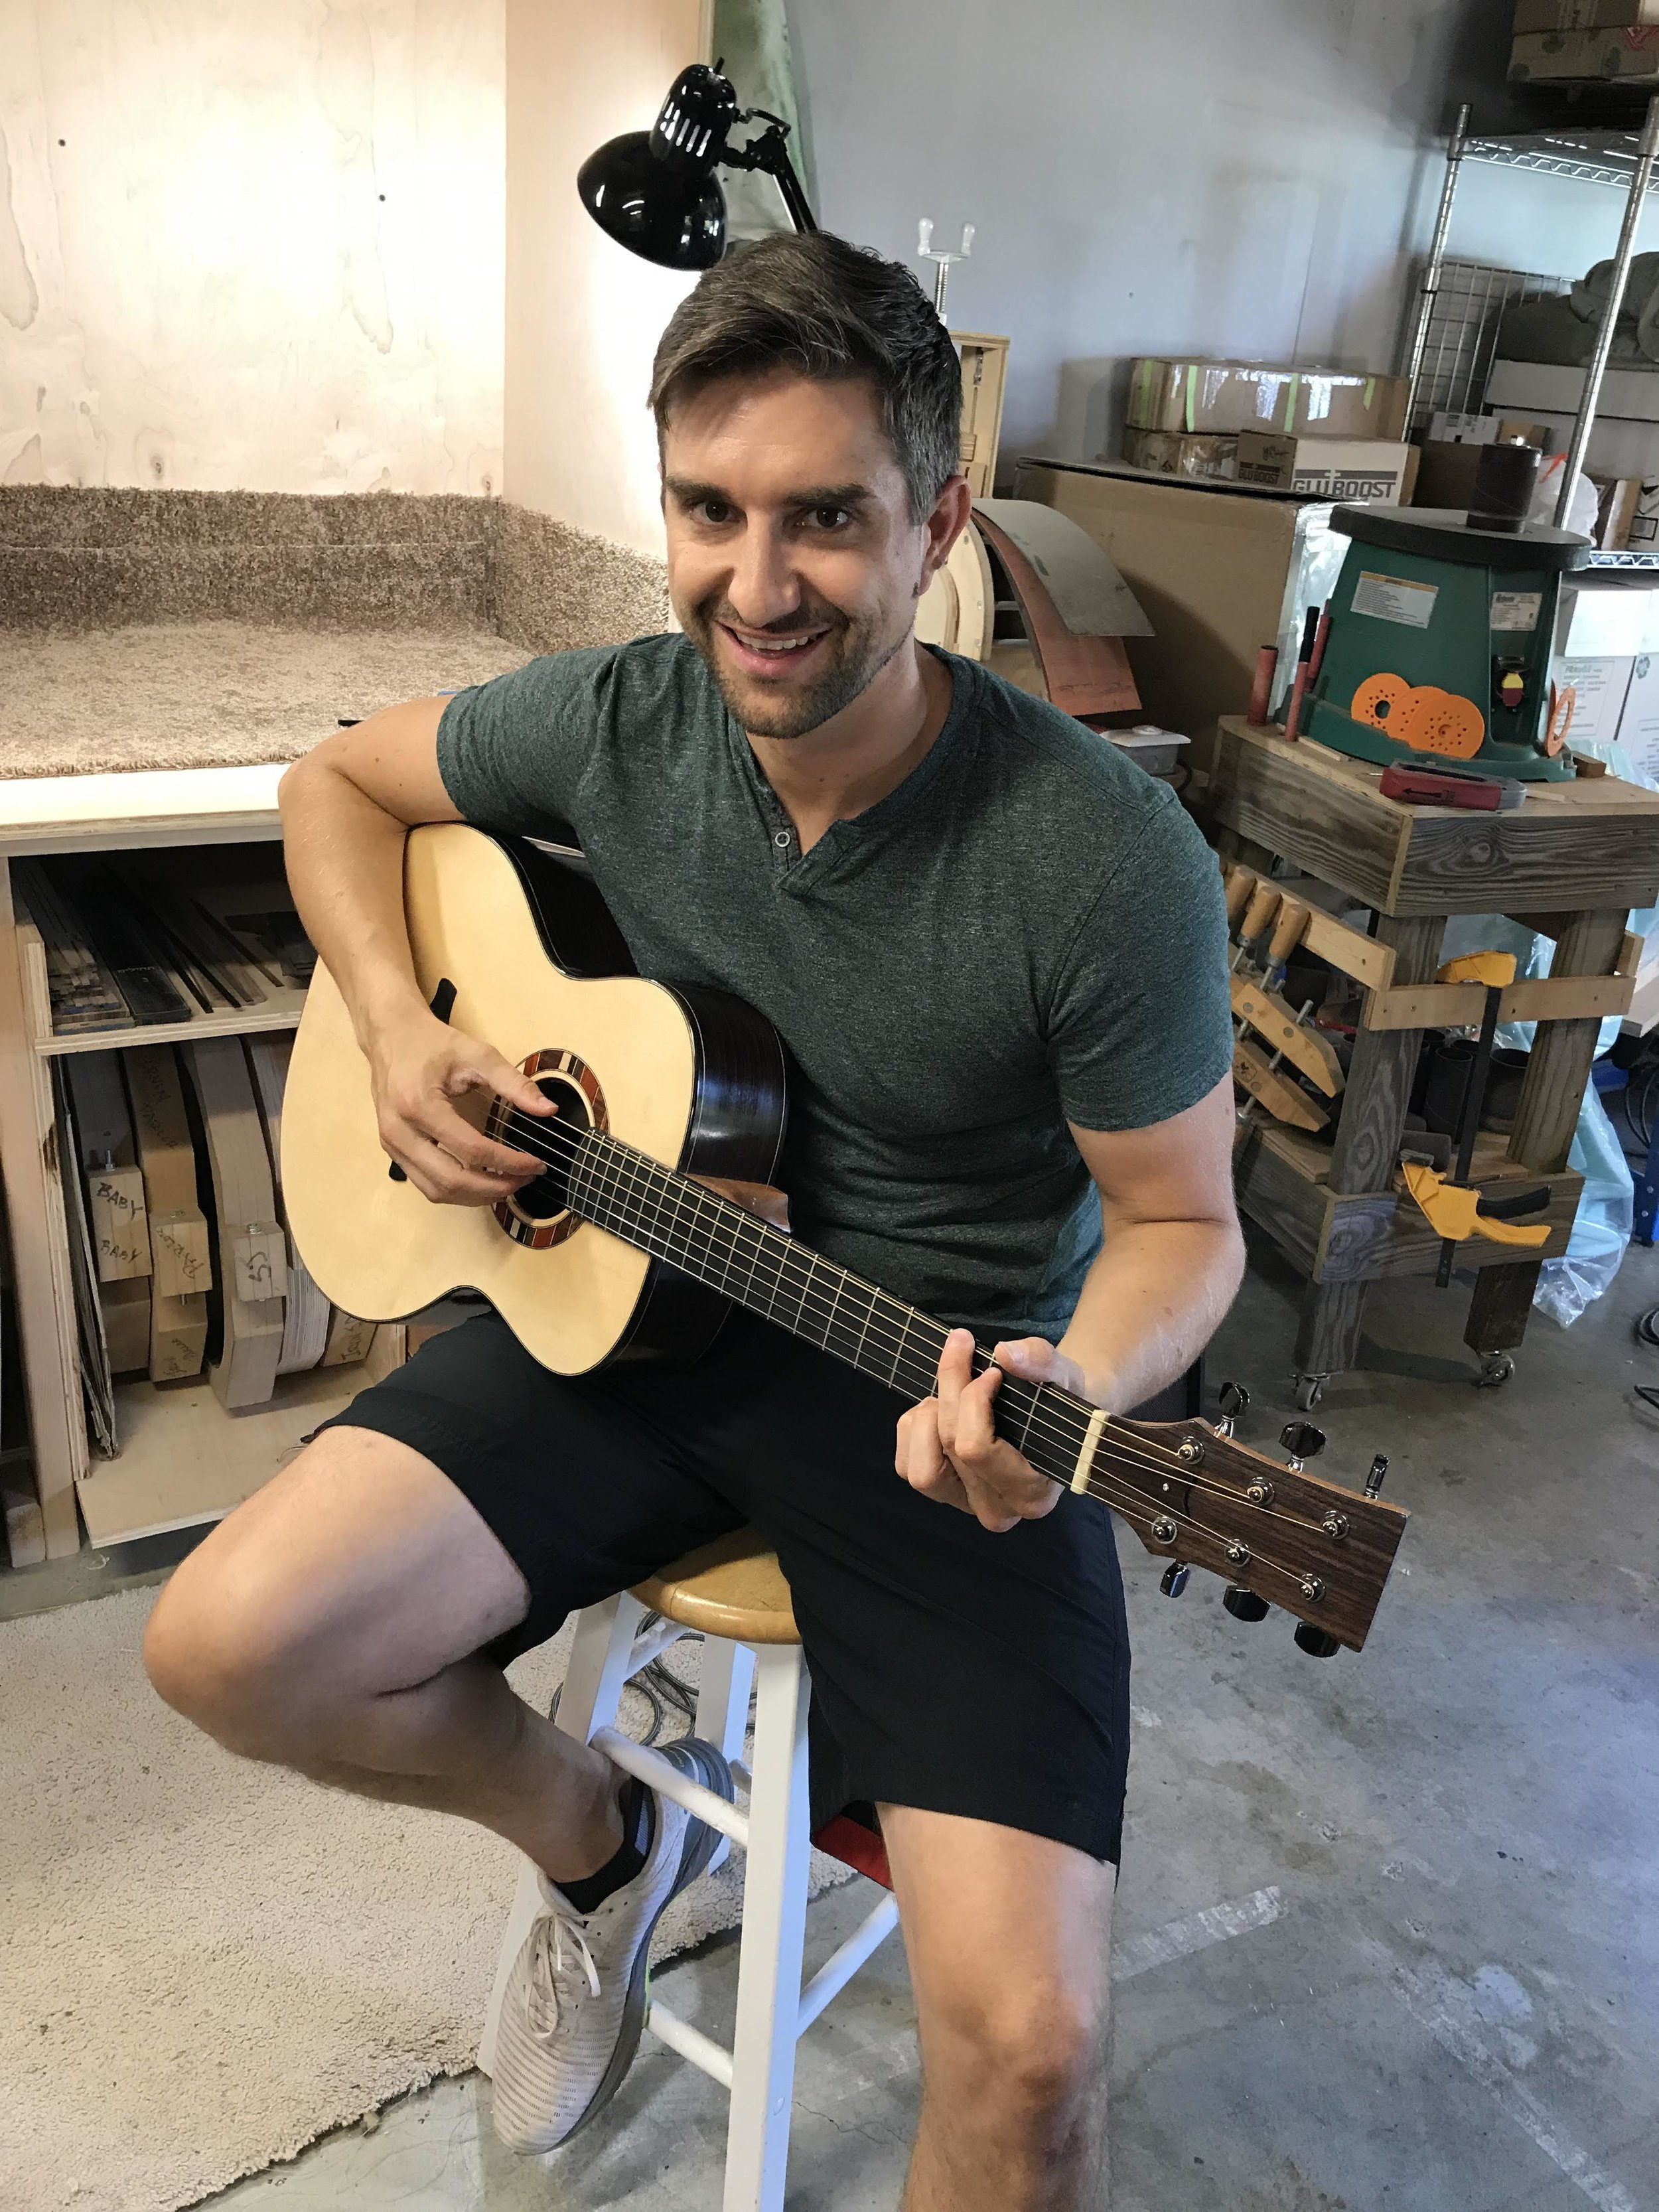 Student review - I first came across Irvin Guitars through an AirBnb tour in the spring of 2019, and was instantly captivated by Wayne's knowledge as a luthier. I'd been interested in woodworking for some time, but had very little experience in a shop or building anything by hand. Wayne immediately struck me as both a gifted craftsman and approachable teacher. I knew he'd be the perfect mentor.My training with Wayne consisted of over 150 hours in his shop, in which I designed and built my own acoustic guitar from start to finish. Throughout the process, I learned both the fundamentals of woodworking, as well as the fine intricacies of guitar craftsmanship. The end result is a beautiful, one of kind instrument that I'll proudly play for the rest of my life.Whether you're an aspiring luthier, or simply want to explore a new hobby, Wayne Johnson is the person to work with. He is generous with his time and knowledge, and has the trademarks of a gifted teacher: patience, knowledge, and humility. - A.C. August, 2019 graduate